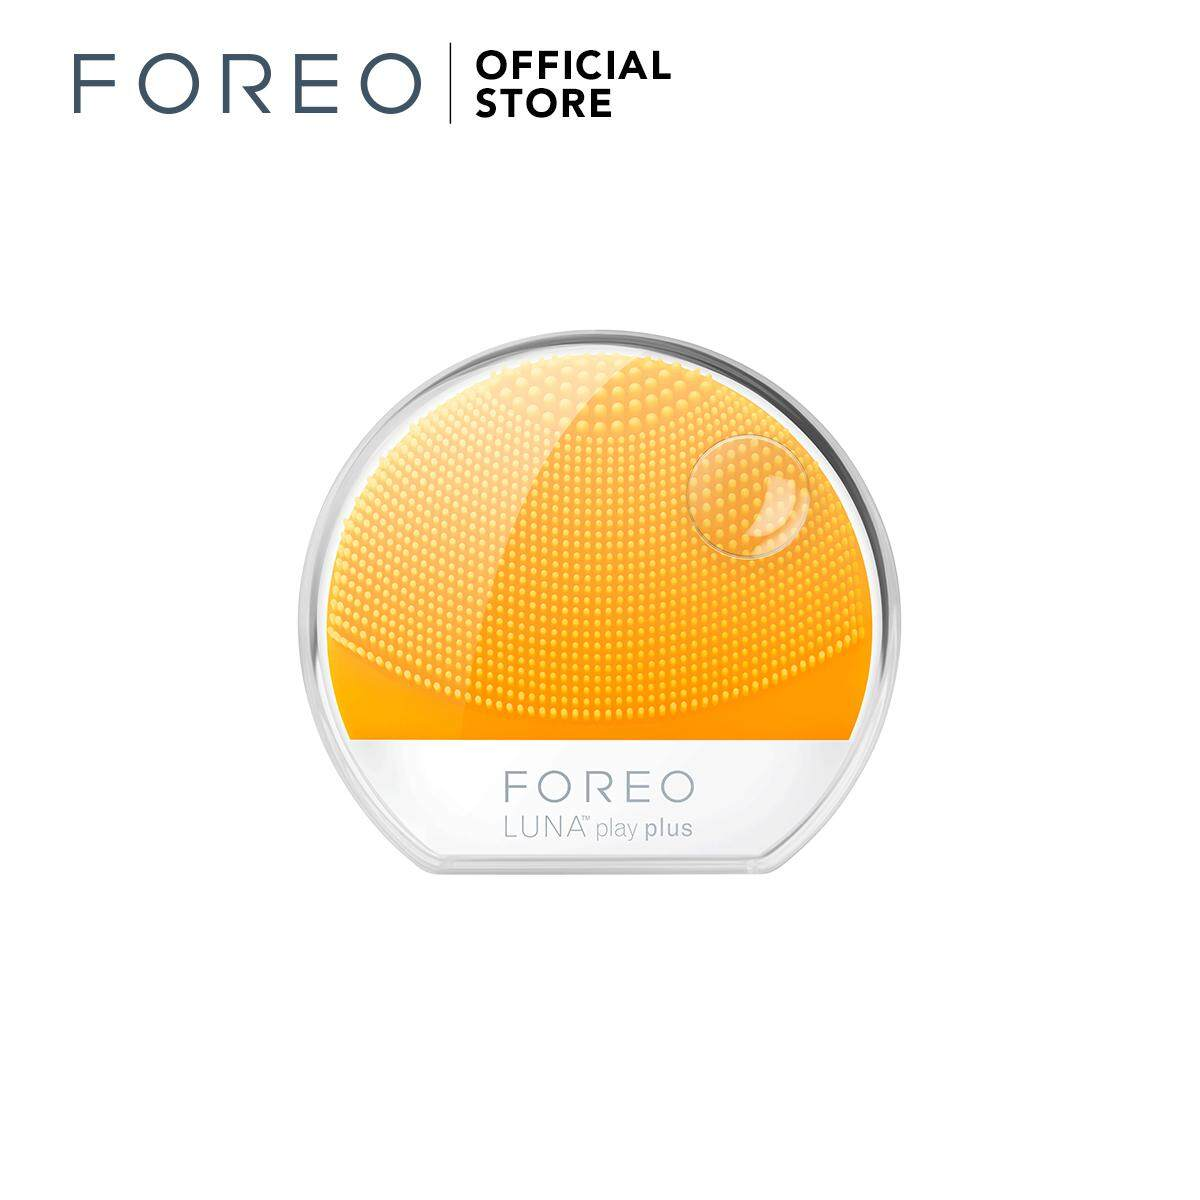 แม่ฮ่องสอน FOREO LUNA play plus Sunflower Yellow